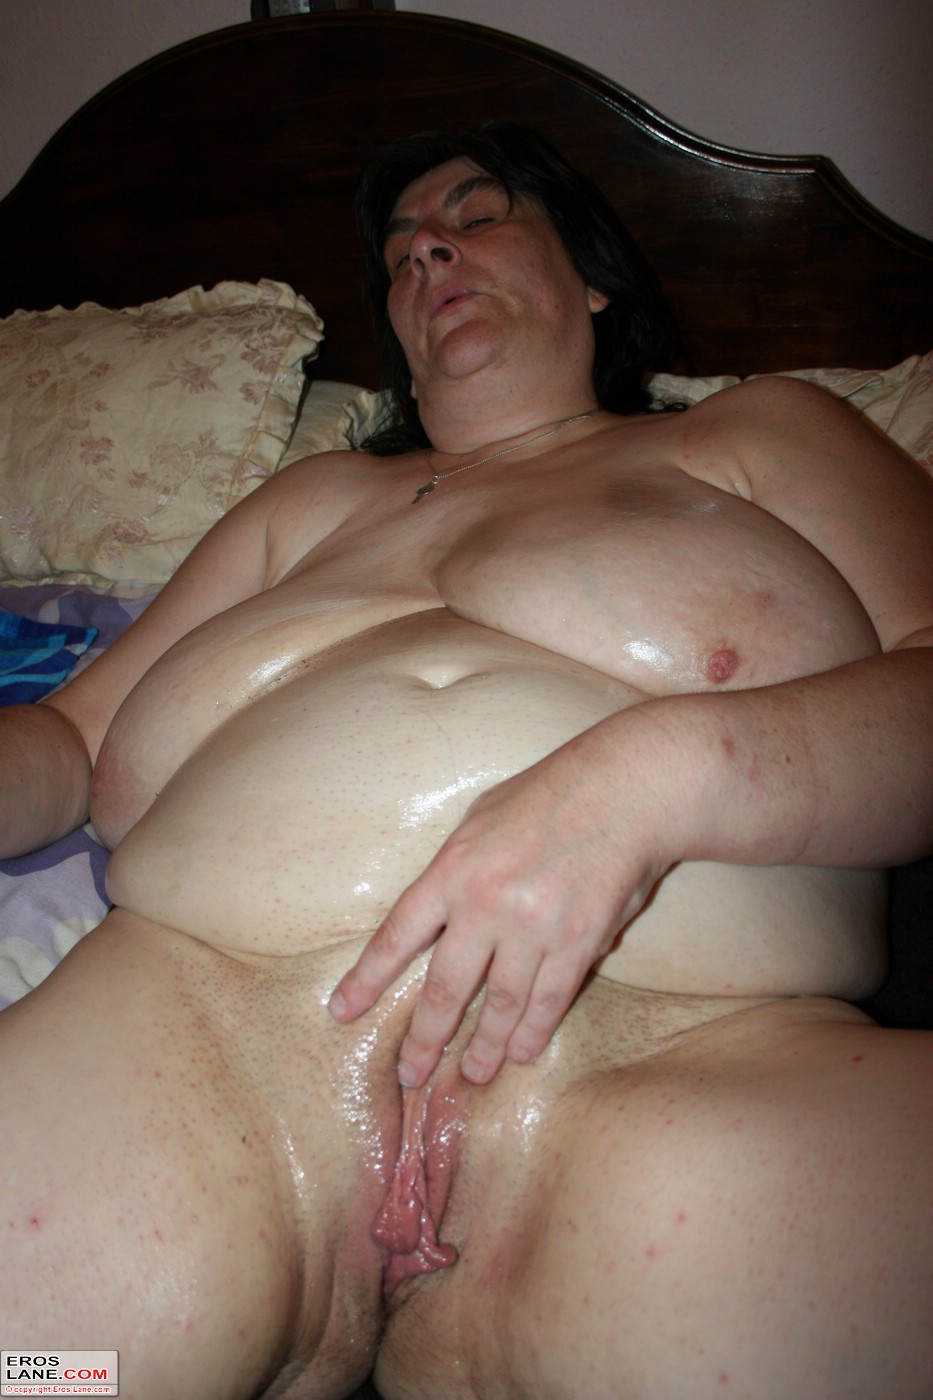 Archive Of Old Women Mature Fat Big Tits  Pussy Lips-3974